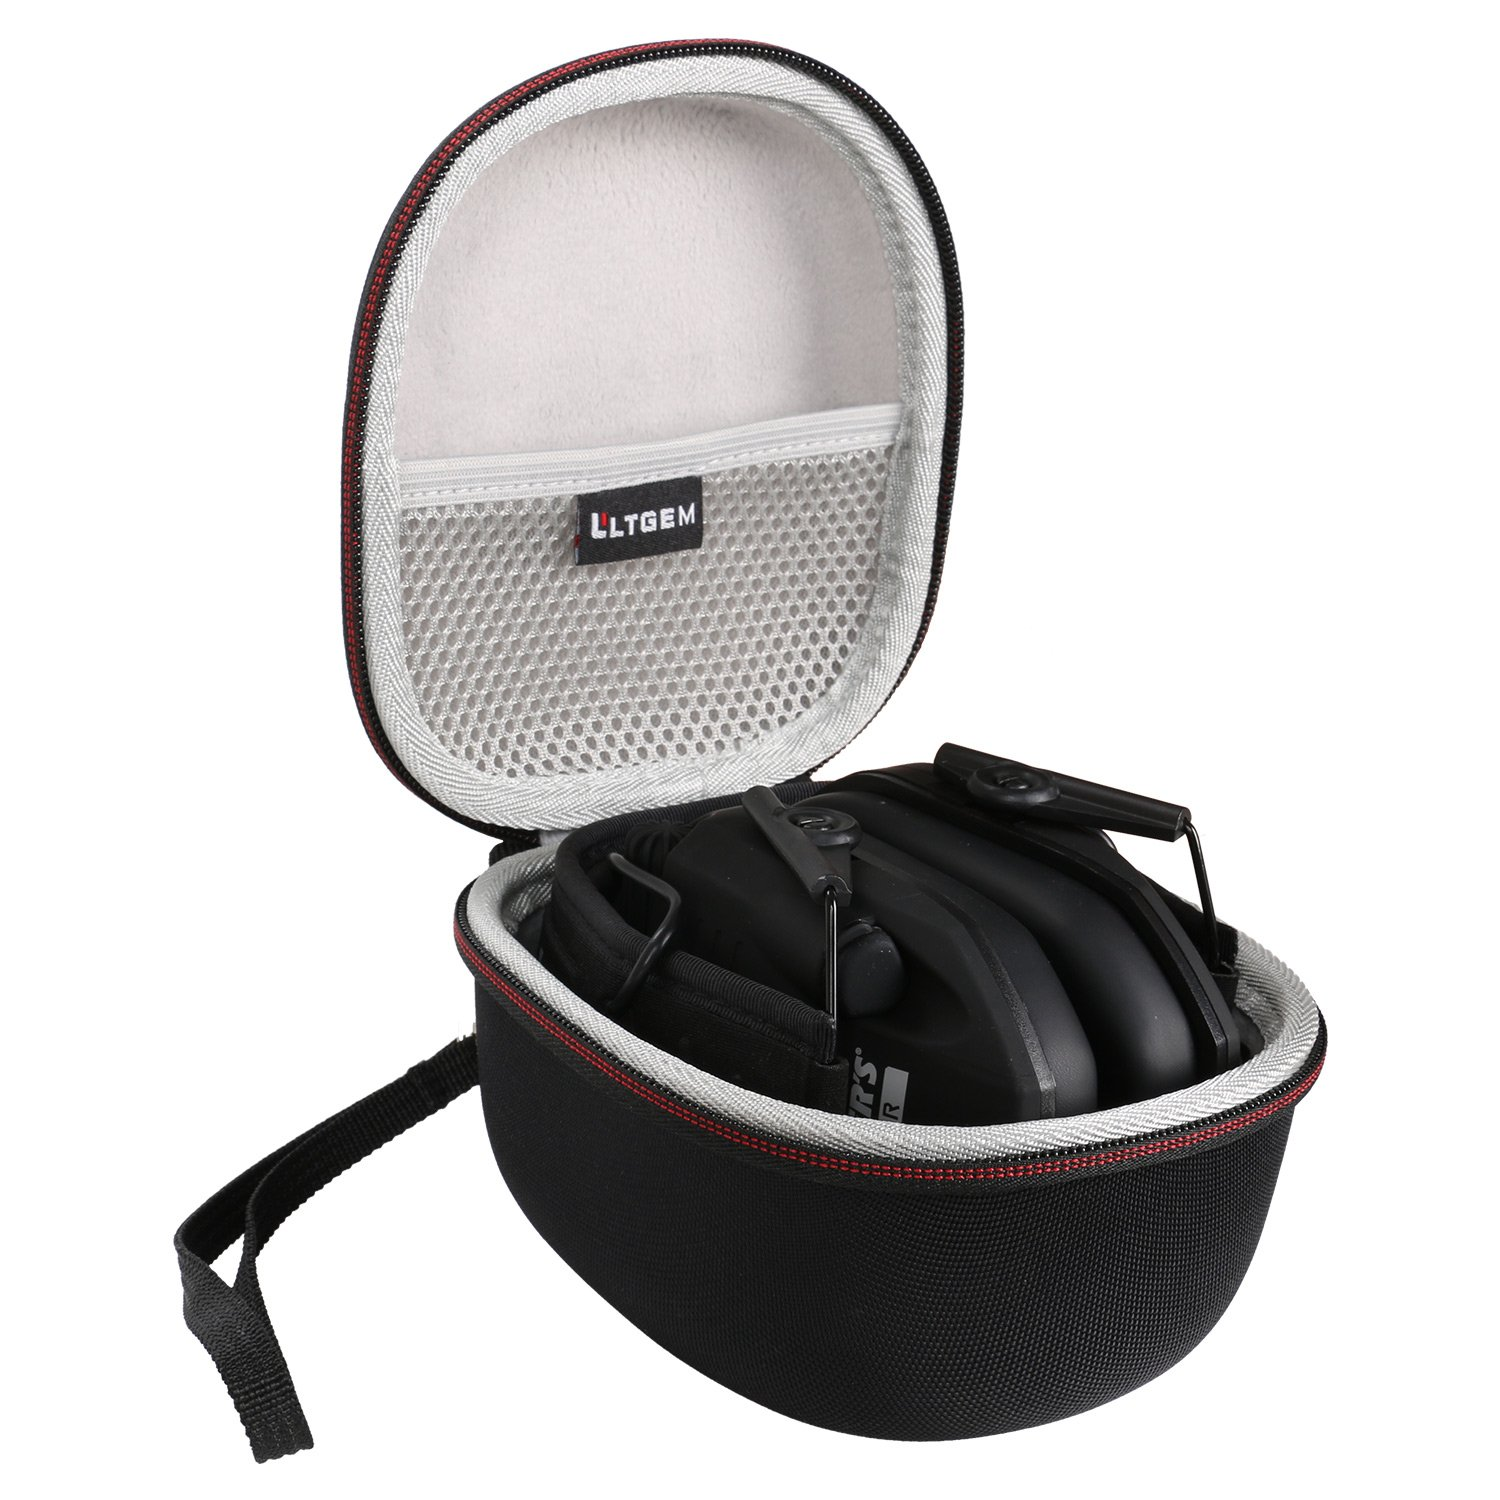 LTGEM Case for Walker's Game Ear Razor Slim Electronic Muff with Mesh Pocket for Accessories.